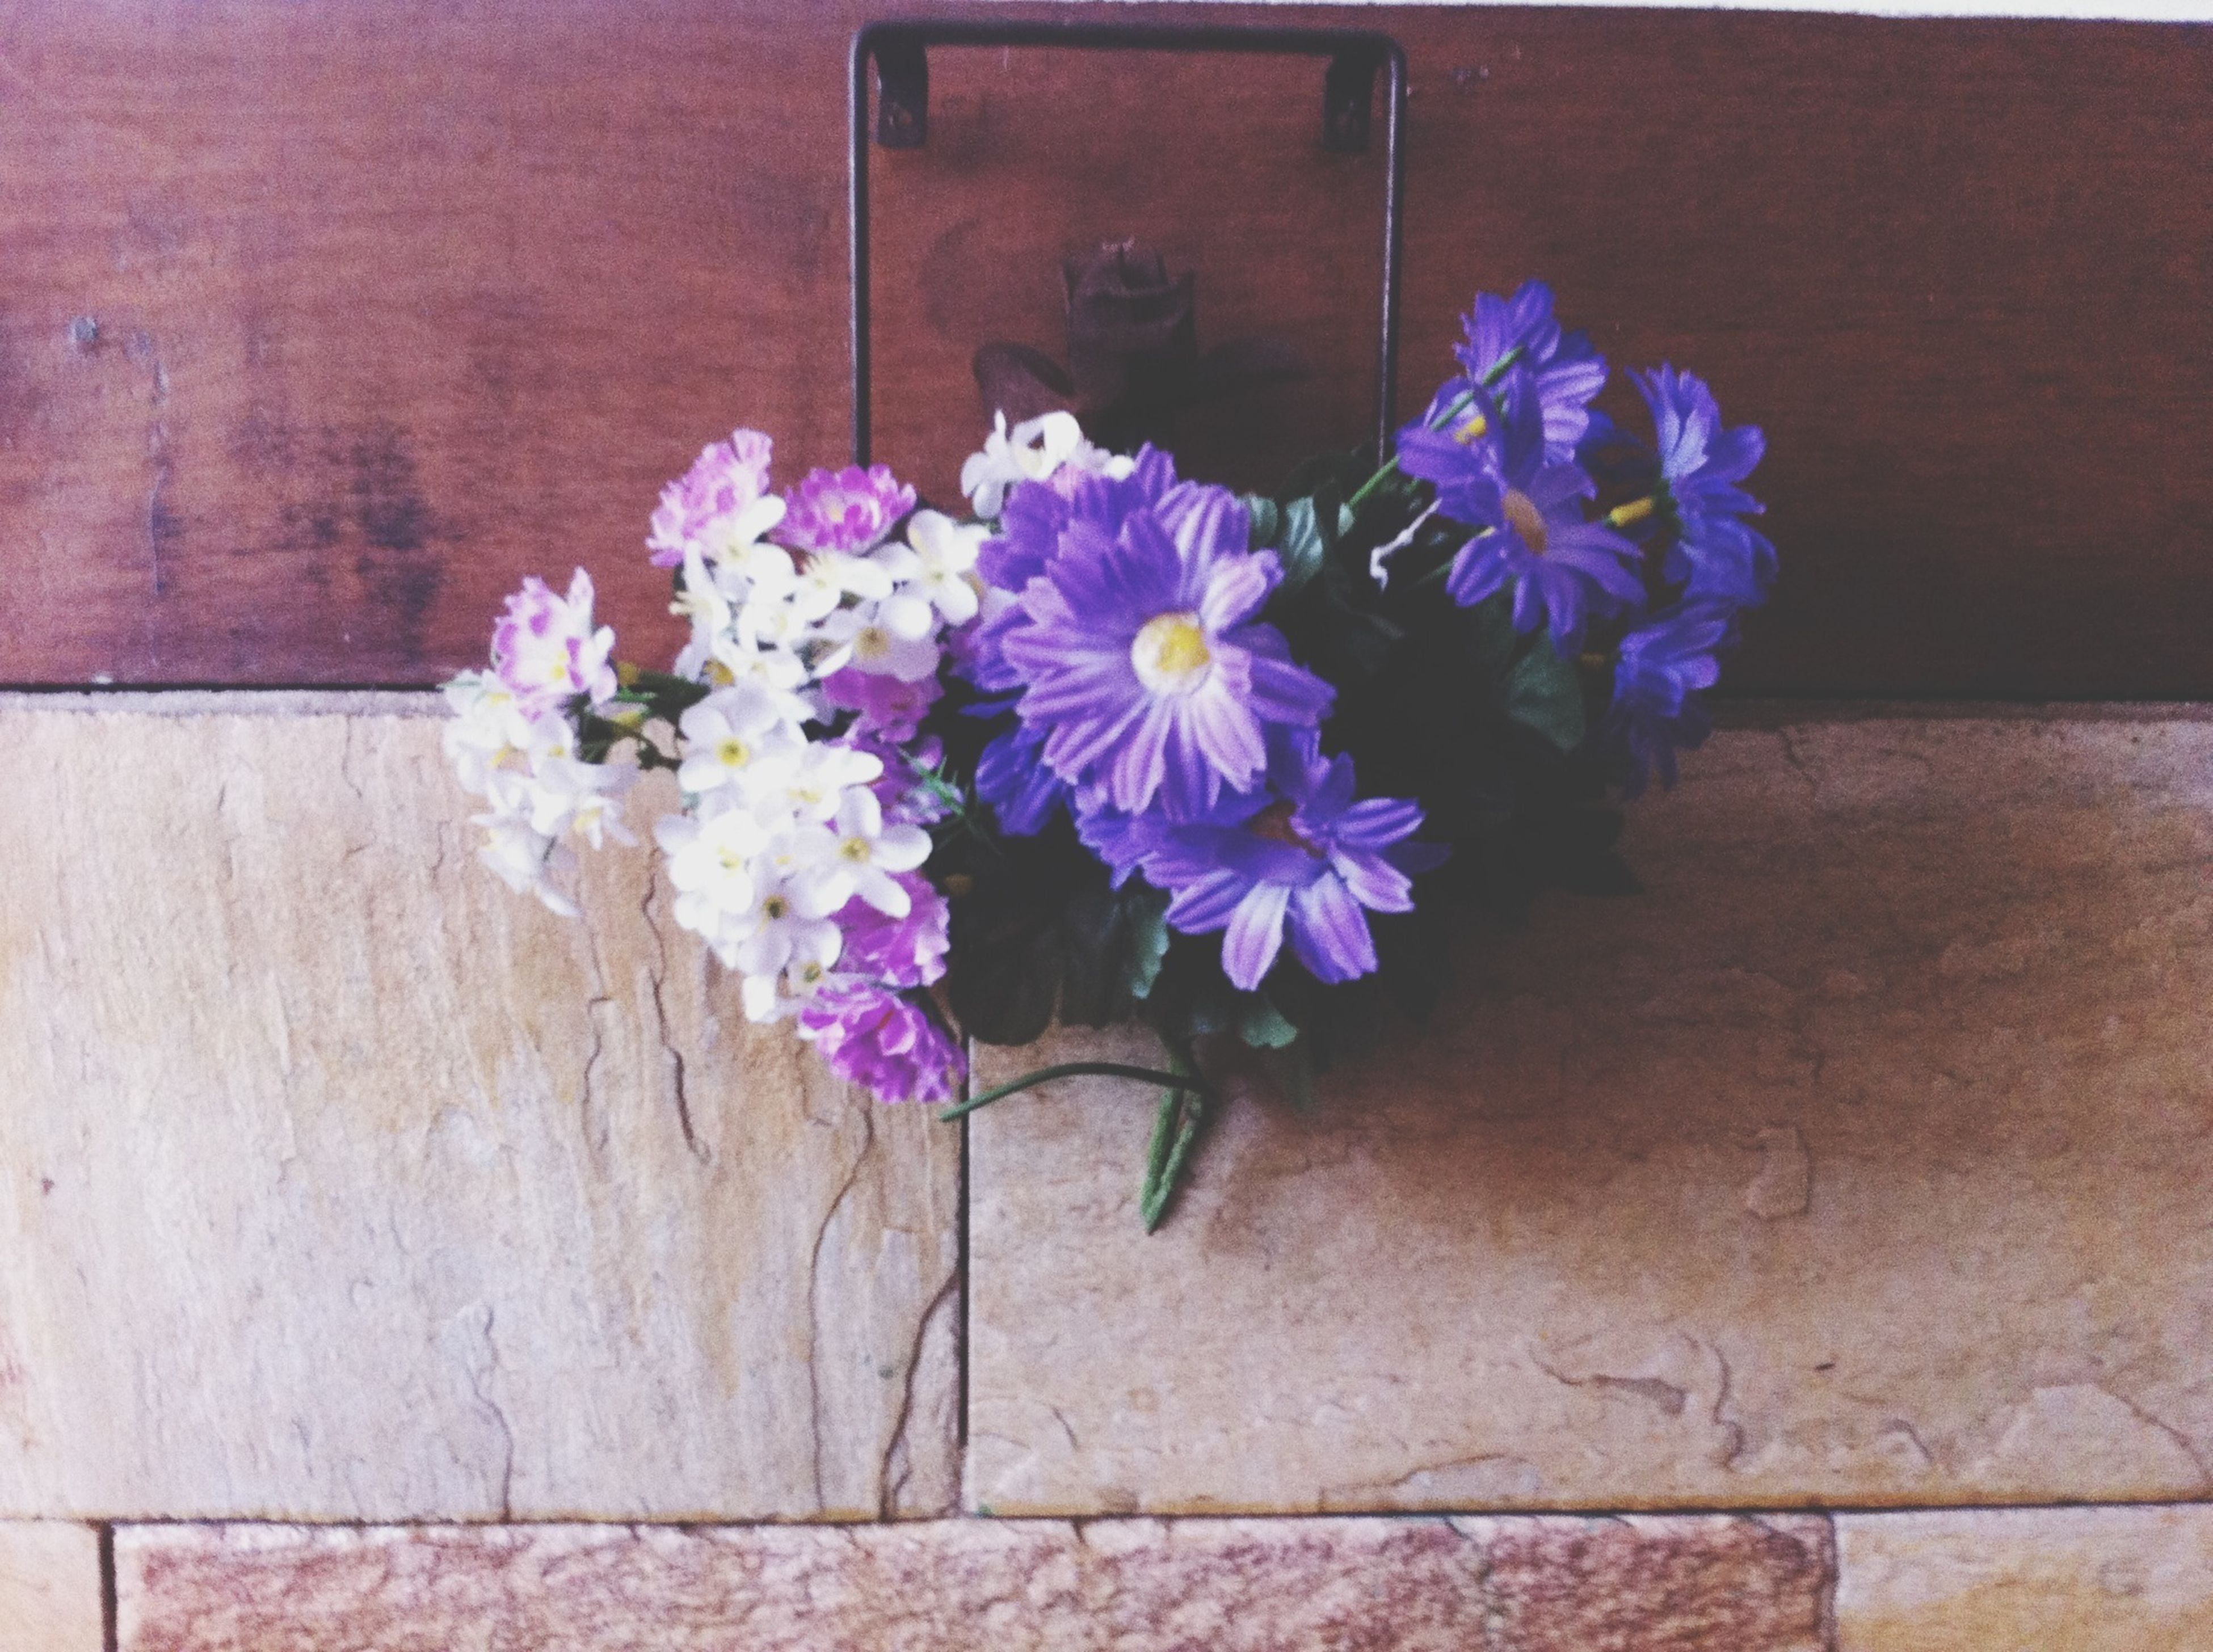 flower, fragility, wall - building feature, petal, freshness, purple, plant, pink color, wall, built structure, multi colored, growth, no people, potted plant, flower head, architecture, wood - material, indoors, day, decoration